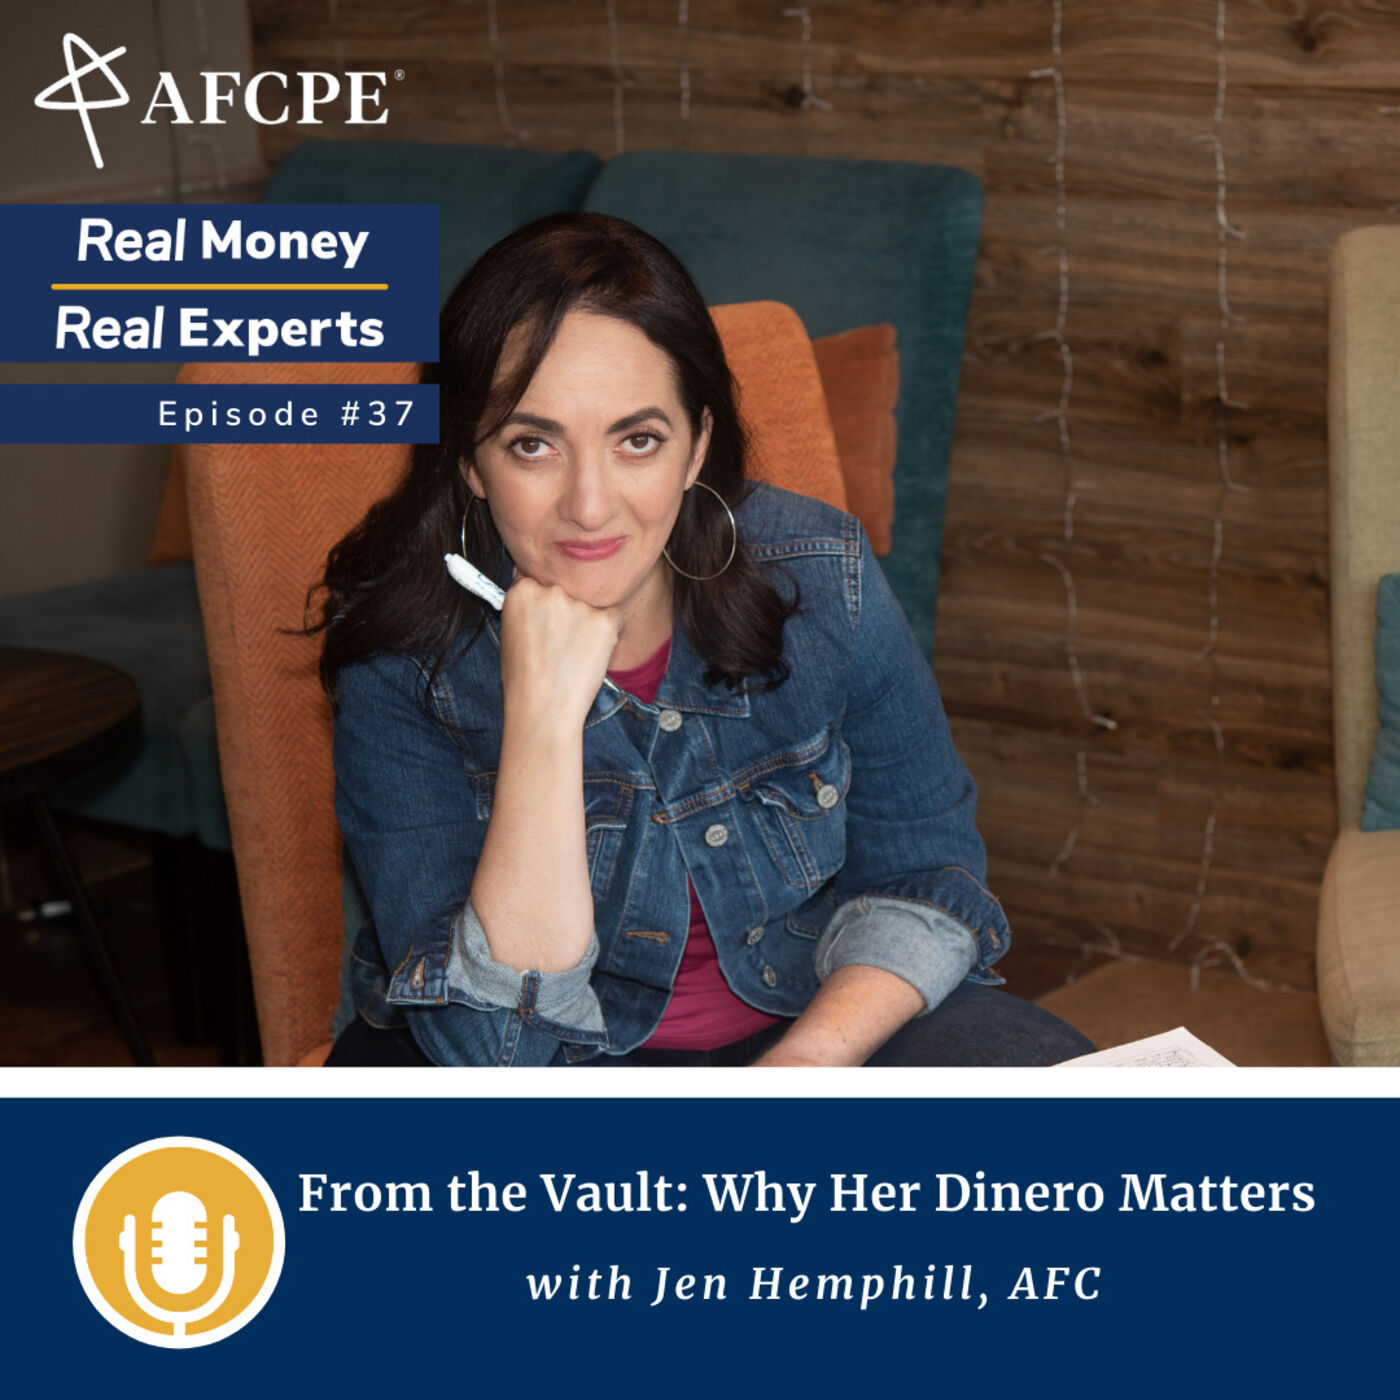 From the Vault: Jen Hemphill: Why Her Dinero Matters